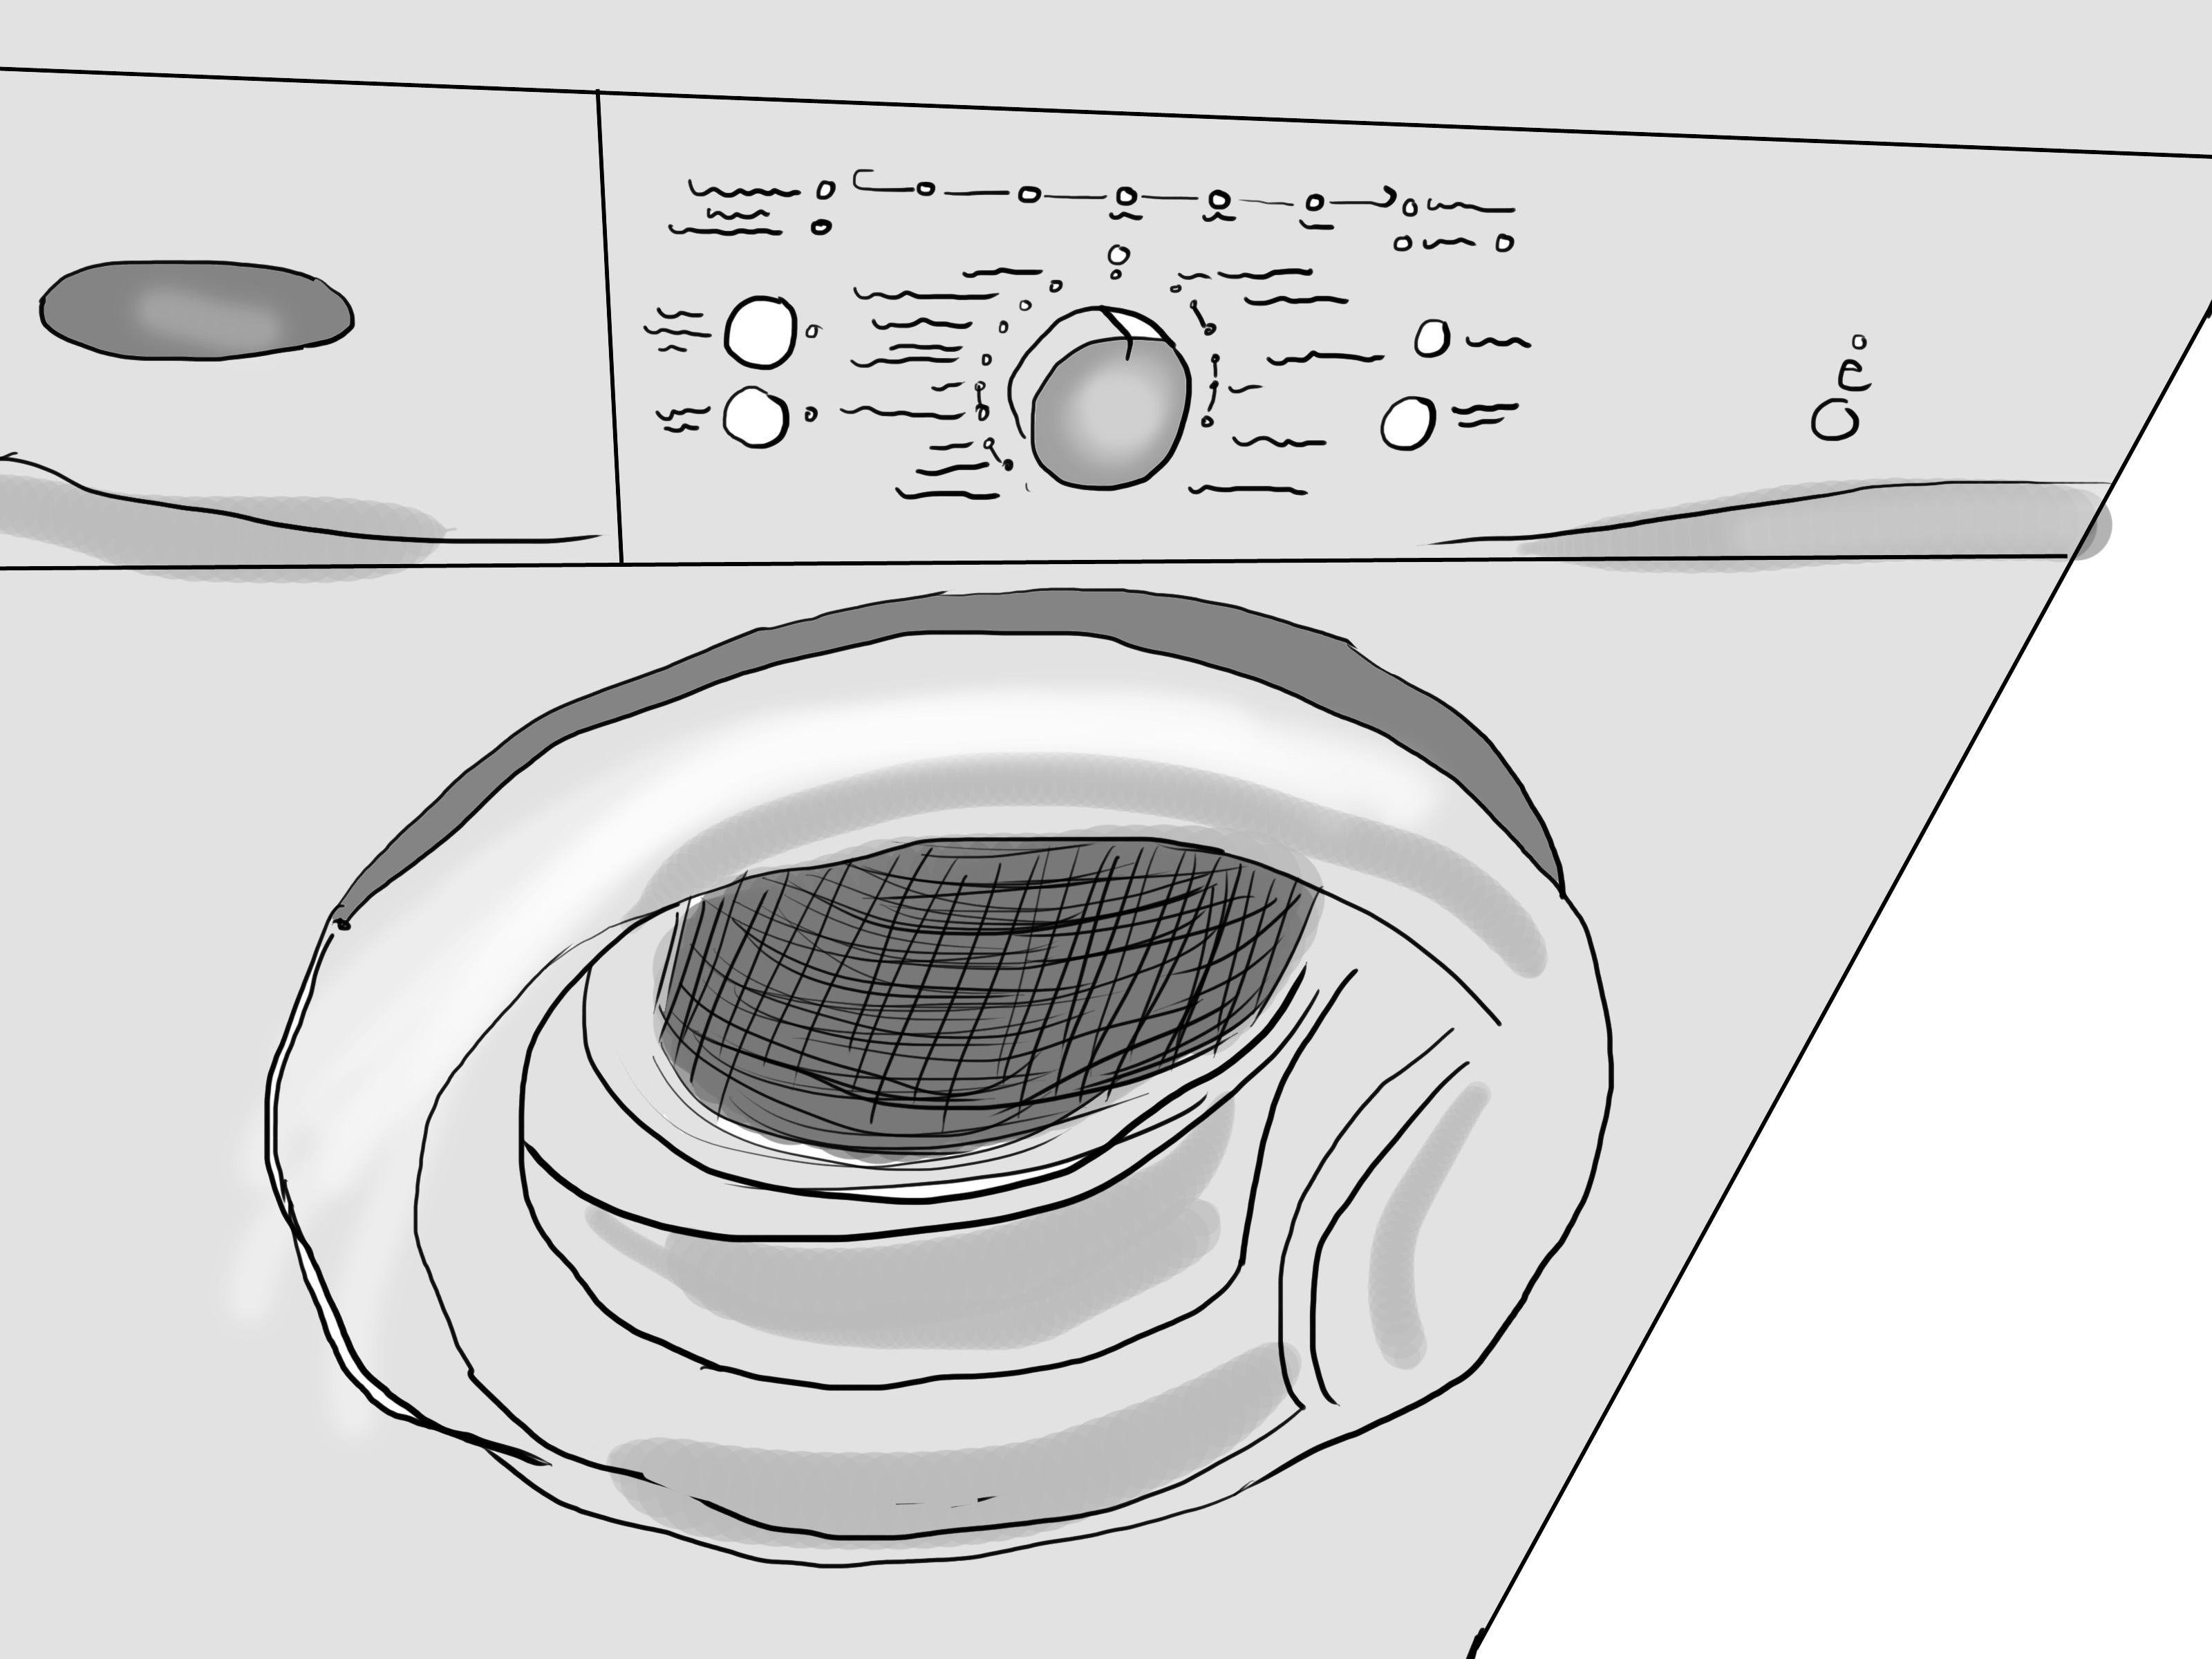 How To Replace A Washing Machine Water Pump 12 Steps